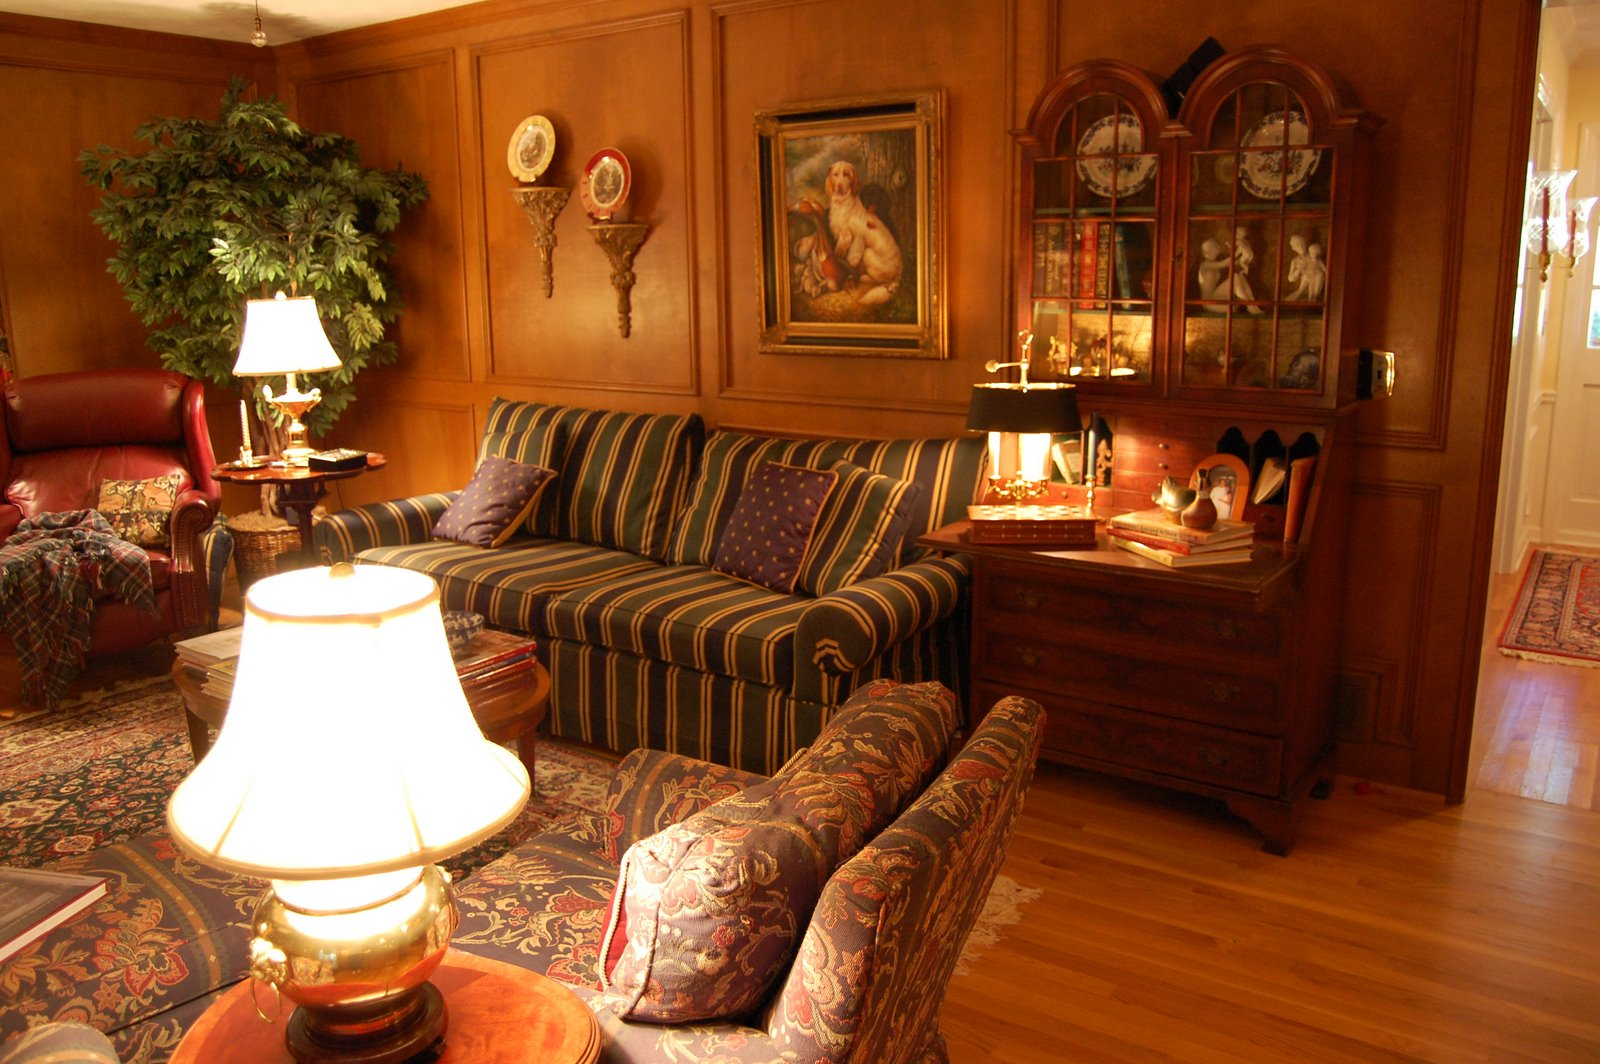 Rooms To Go Living Room Set With Tv How To Design A Room You Will Love For Years To Come